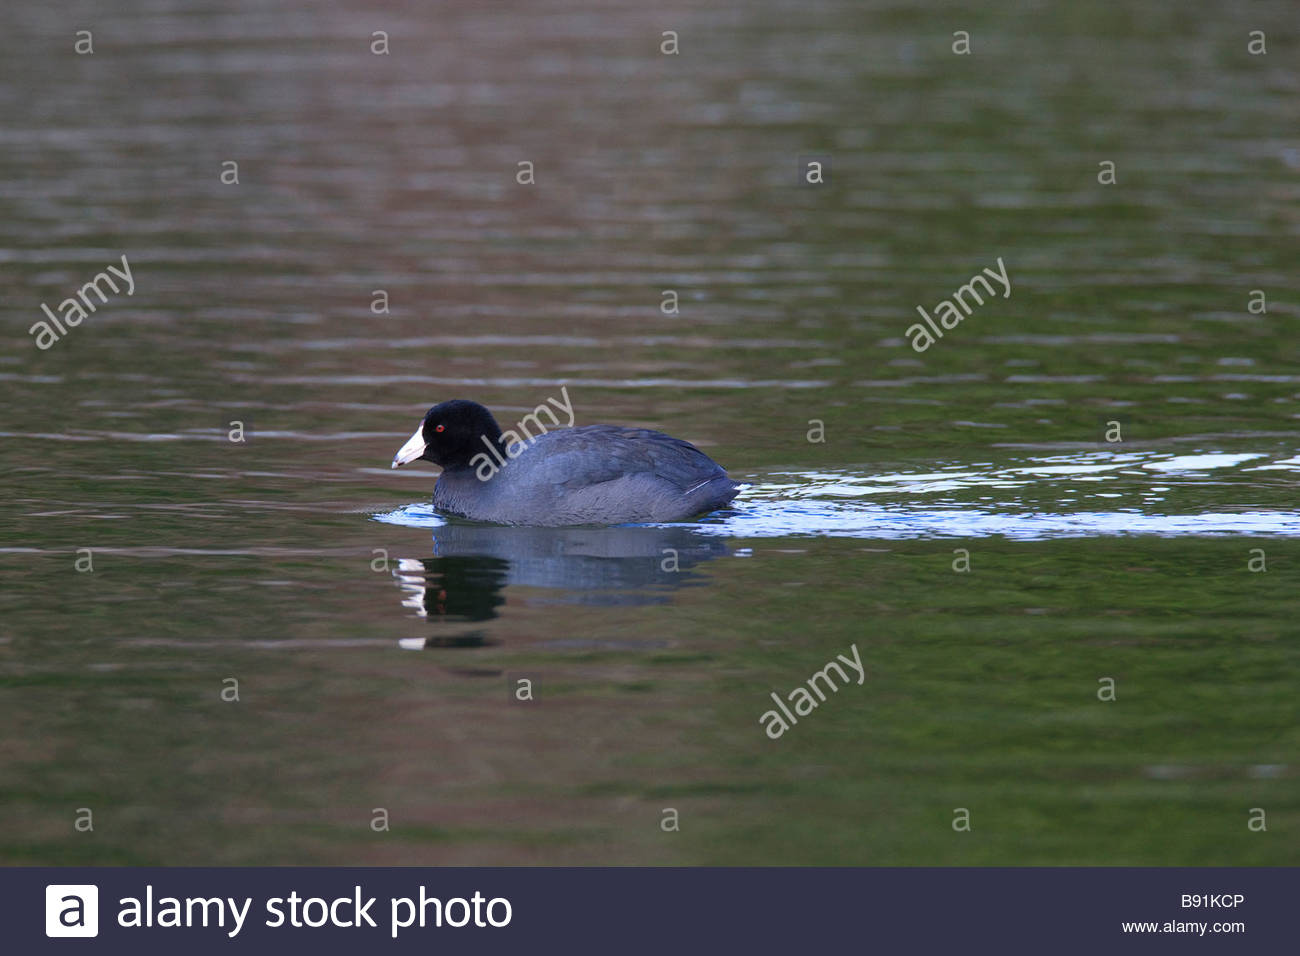 An American coot (Fulica americana) swims across Clear Lake located in Skagit County, Washington. - Stock Image